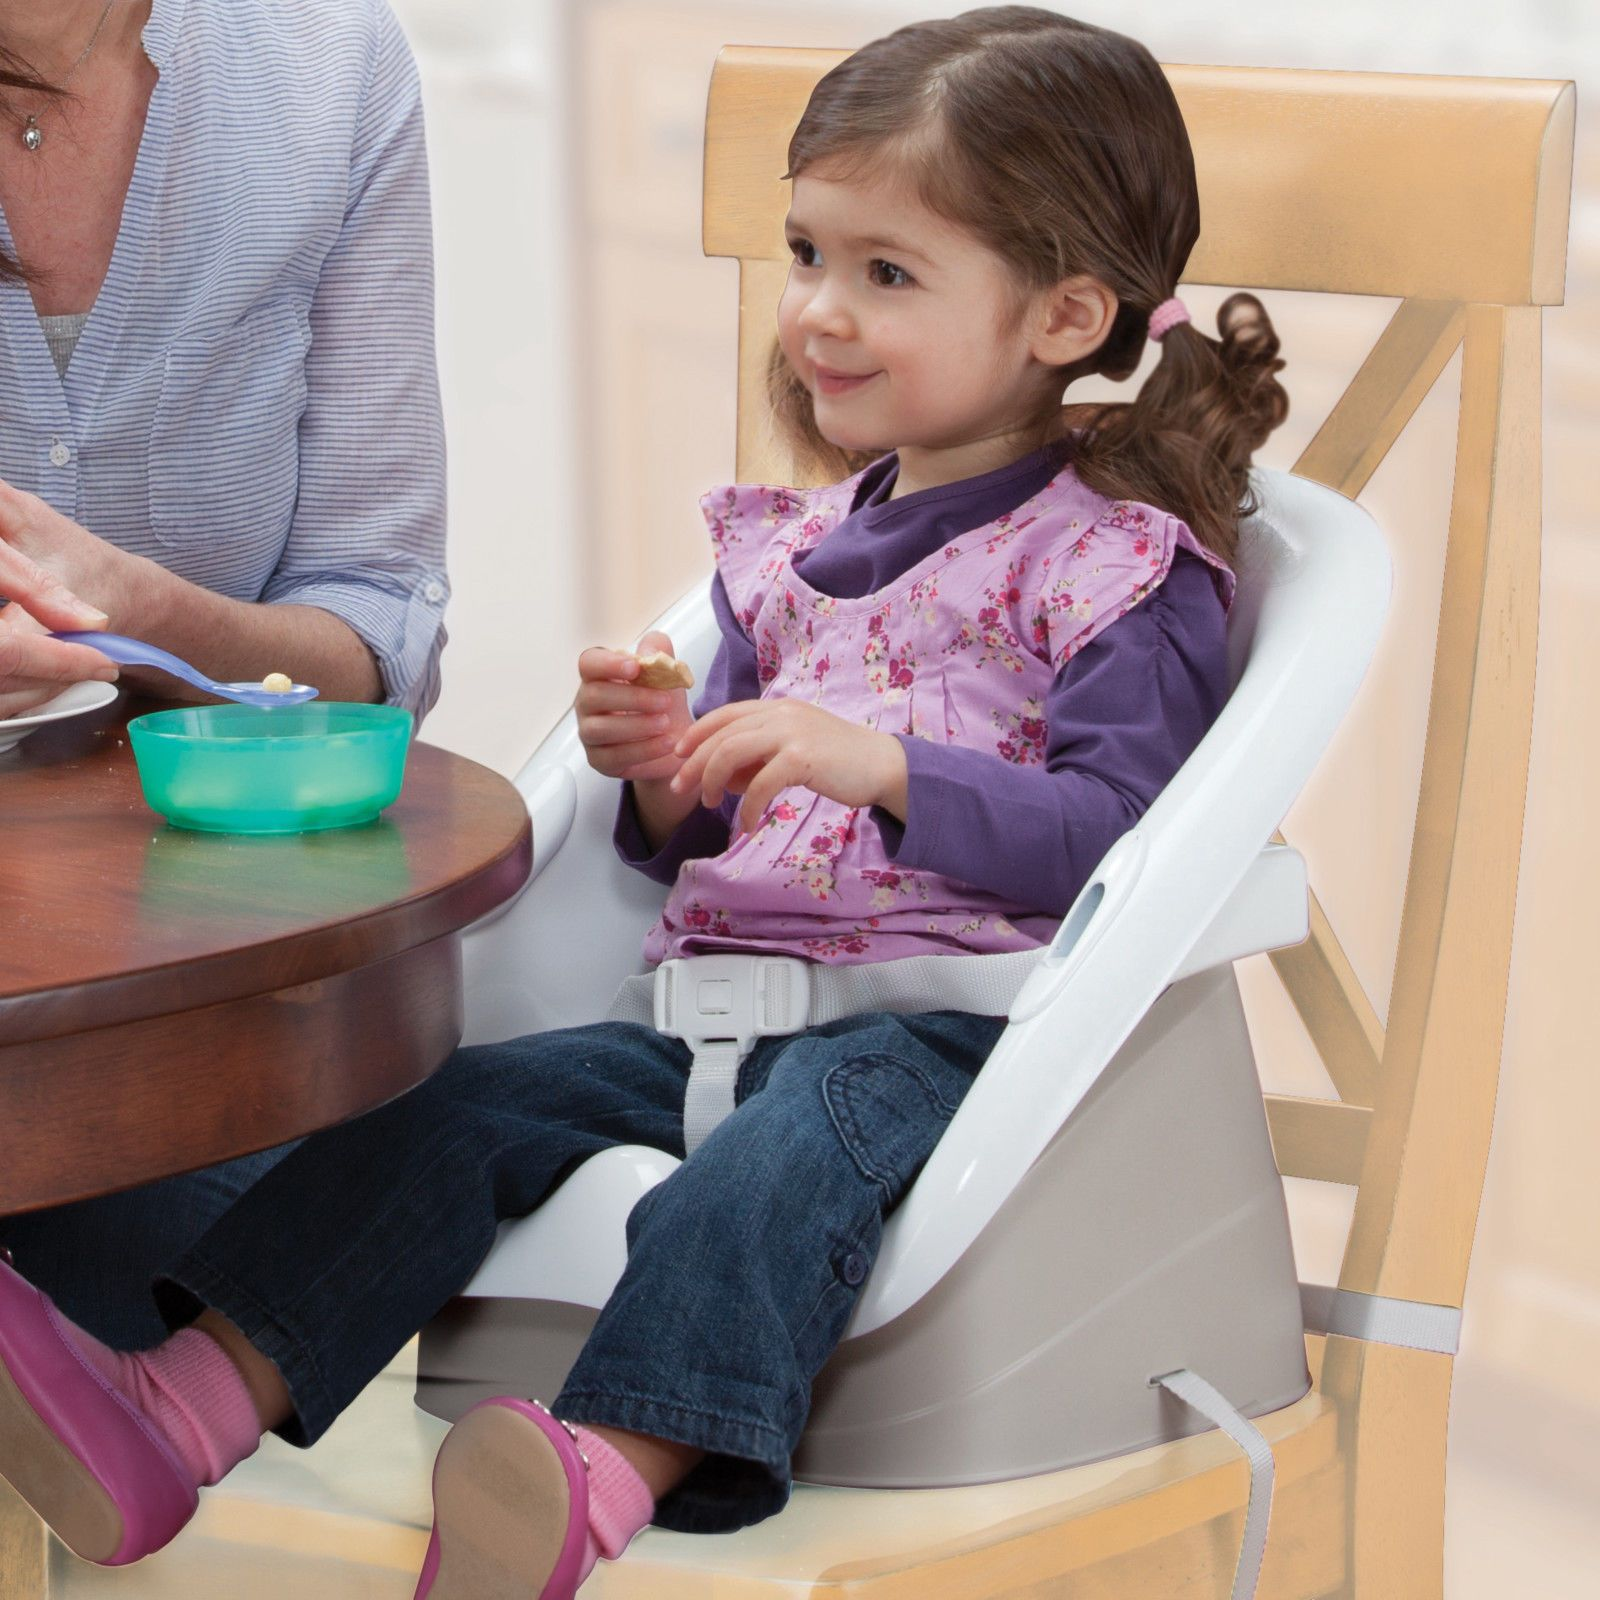 Booster seat child safety comfortable removable feeding